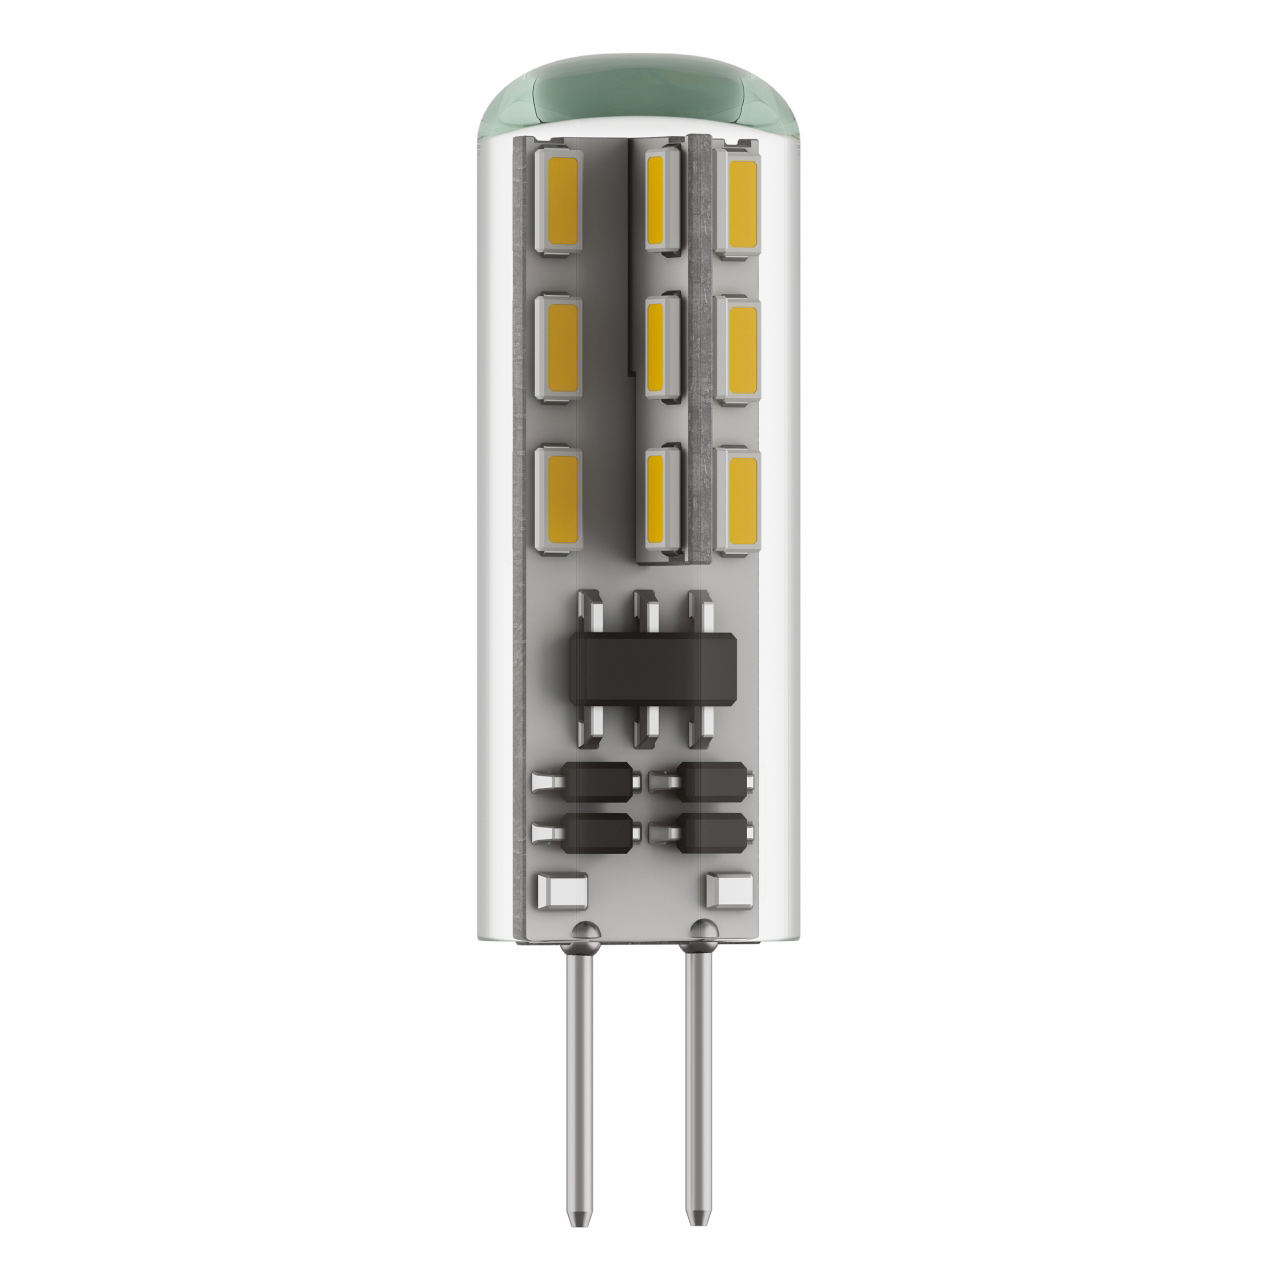 Лампа LED 12V JC G4 1.5W=15W 110LM 360G RA85 3000K 20000H Lightstar 932502